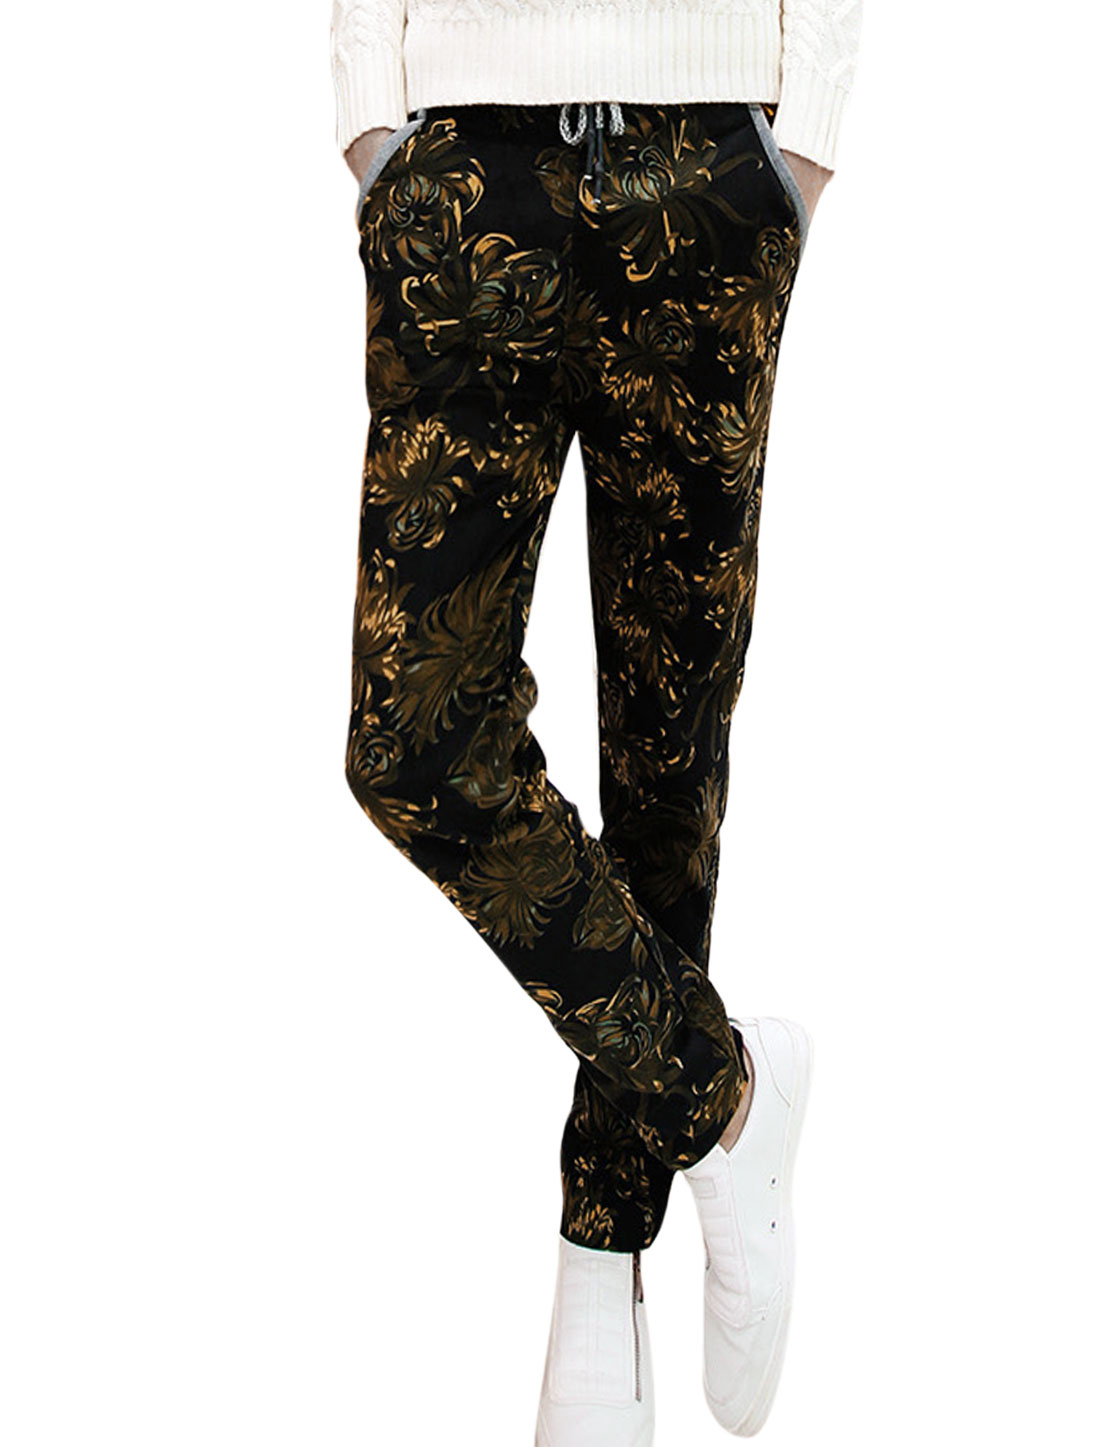 Men Drawstring All Over Sunflower Pattern Casual Pants Black W30